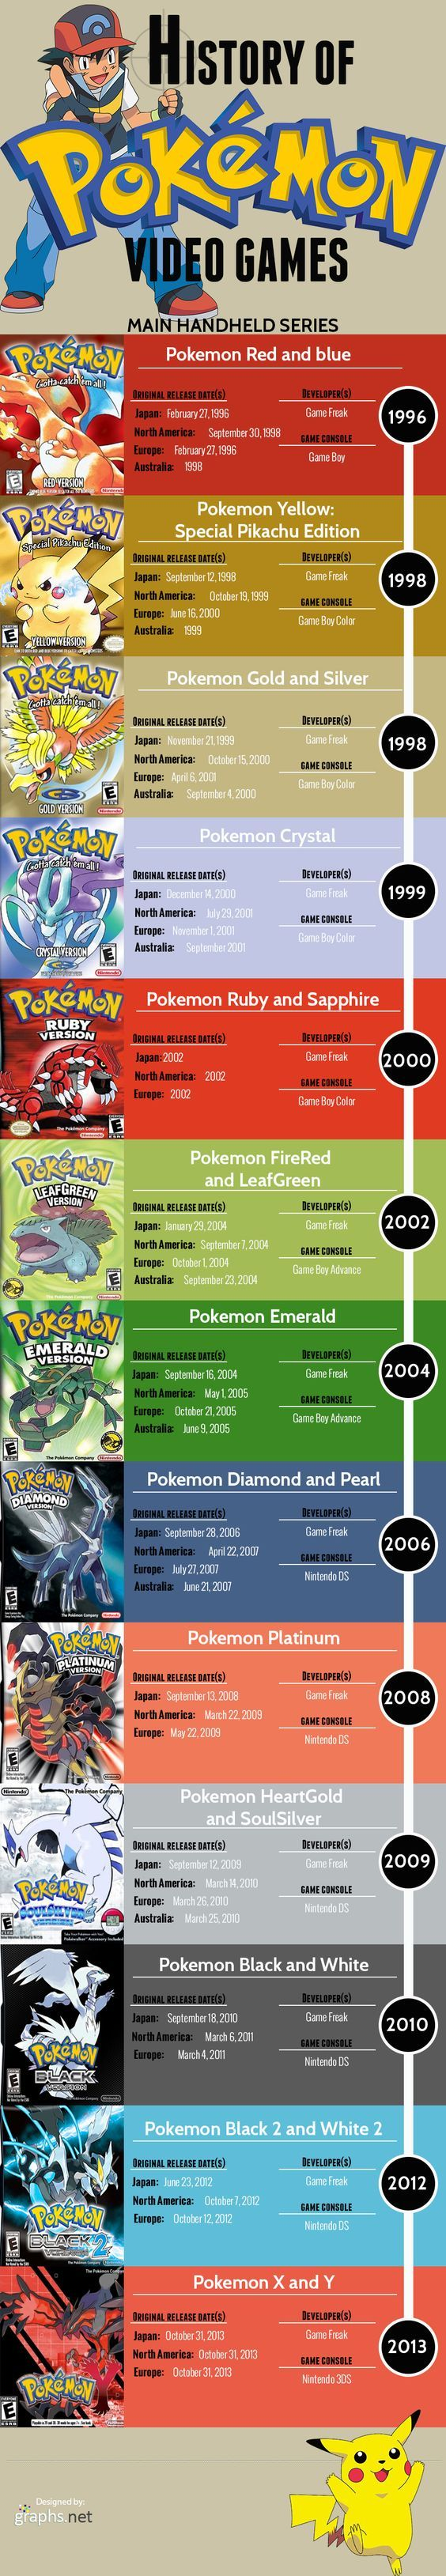 My first pokemon game was fire red. I still remember the day I bought it at Target...good times. Which was your first game?: